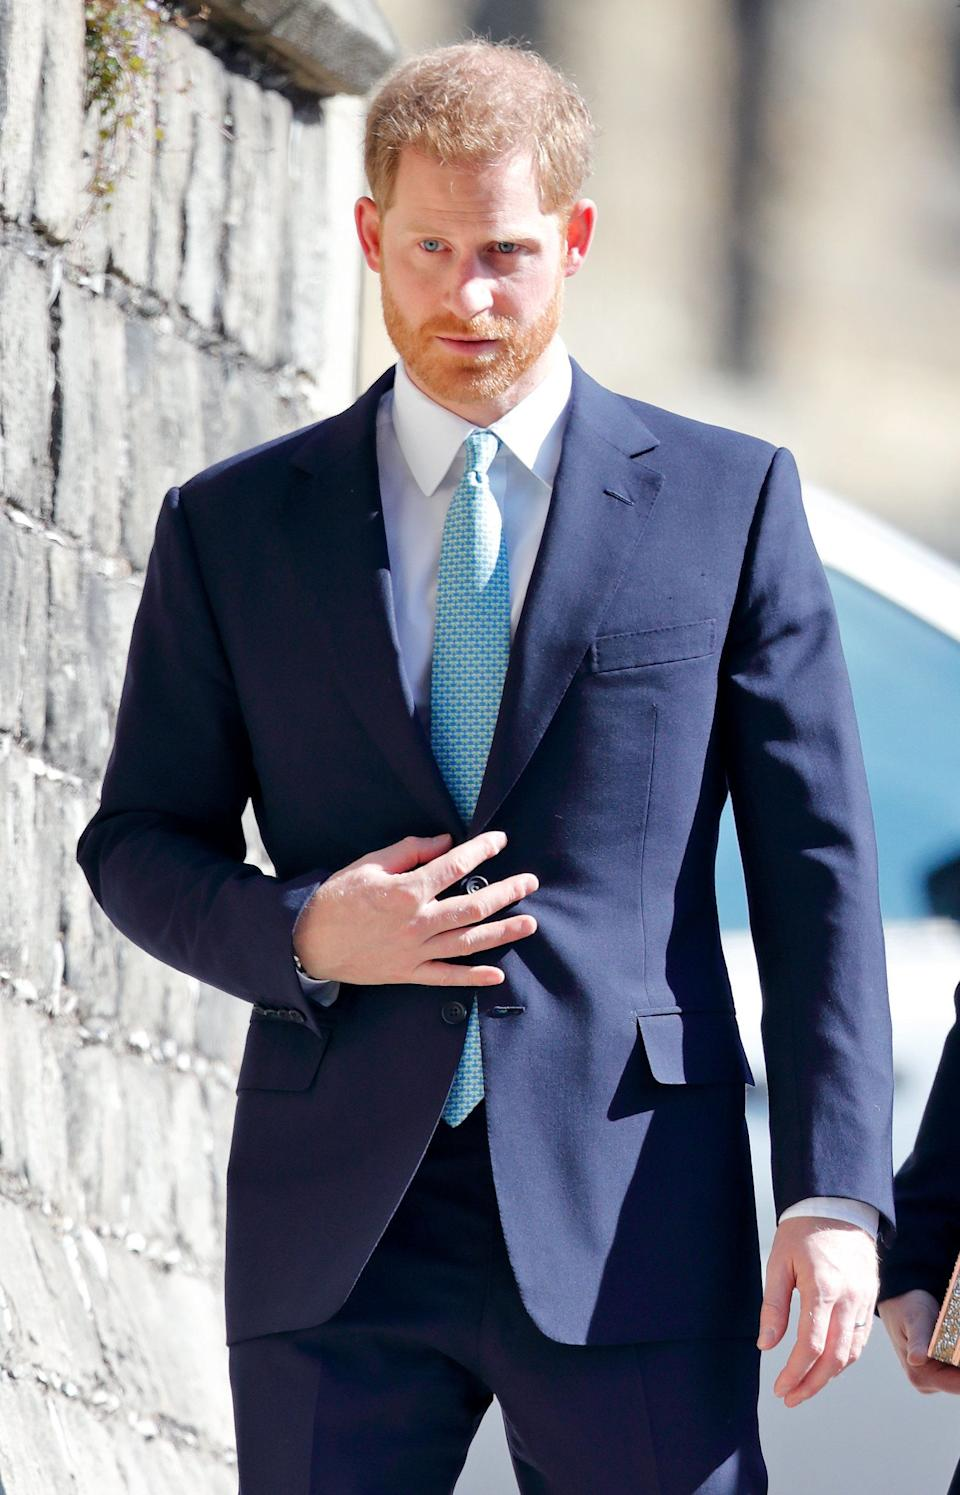 WINDSOR, UNITED KINGDOM - APRIL 21: (EMBARGOED FOR PUBLICATION IN UK NEWSPAPERS UNTIL 24 HOURS AFTER CREATE DATE AND TIME) Prince Harry, Duke of Sussex attends the traditional Easter Sunday church service at St George's Chapel, Windsor Castle on April 21, 2019 in Windsor, England. Easter Sunday this year coincides with Queen Elizabeth II's 93rd birthday. (Photo by Max Mumby/Indigo/Getty Images)